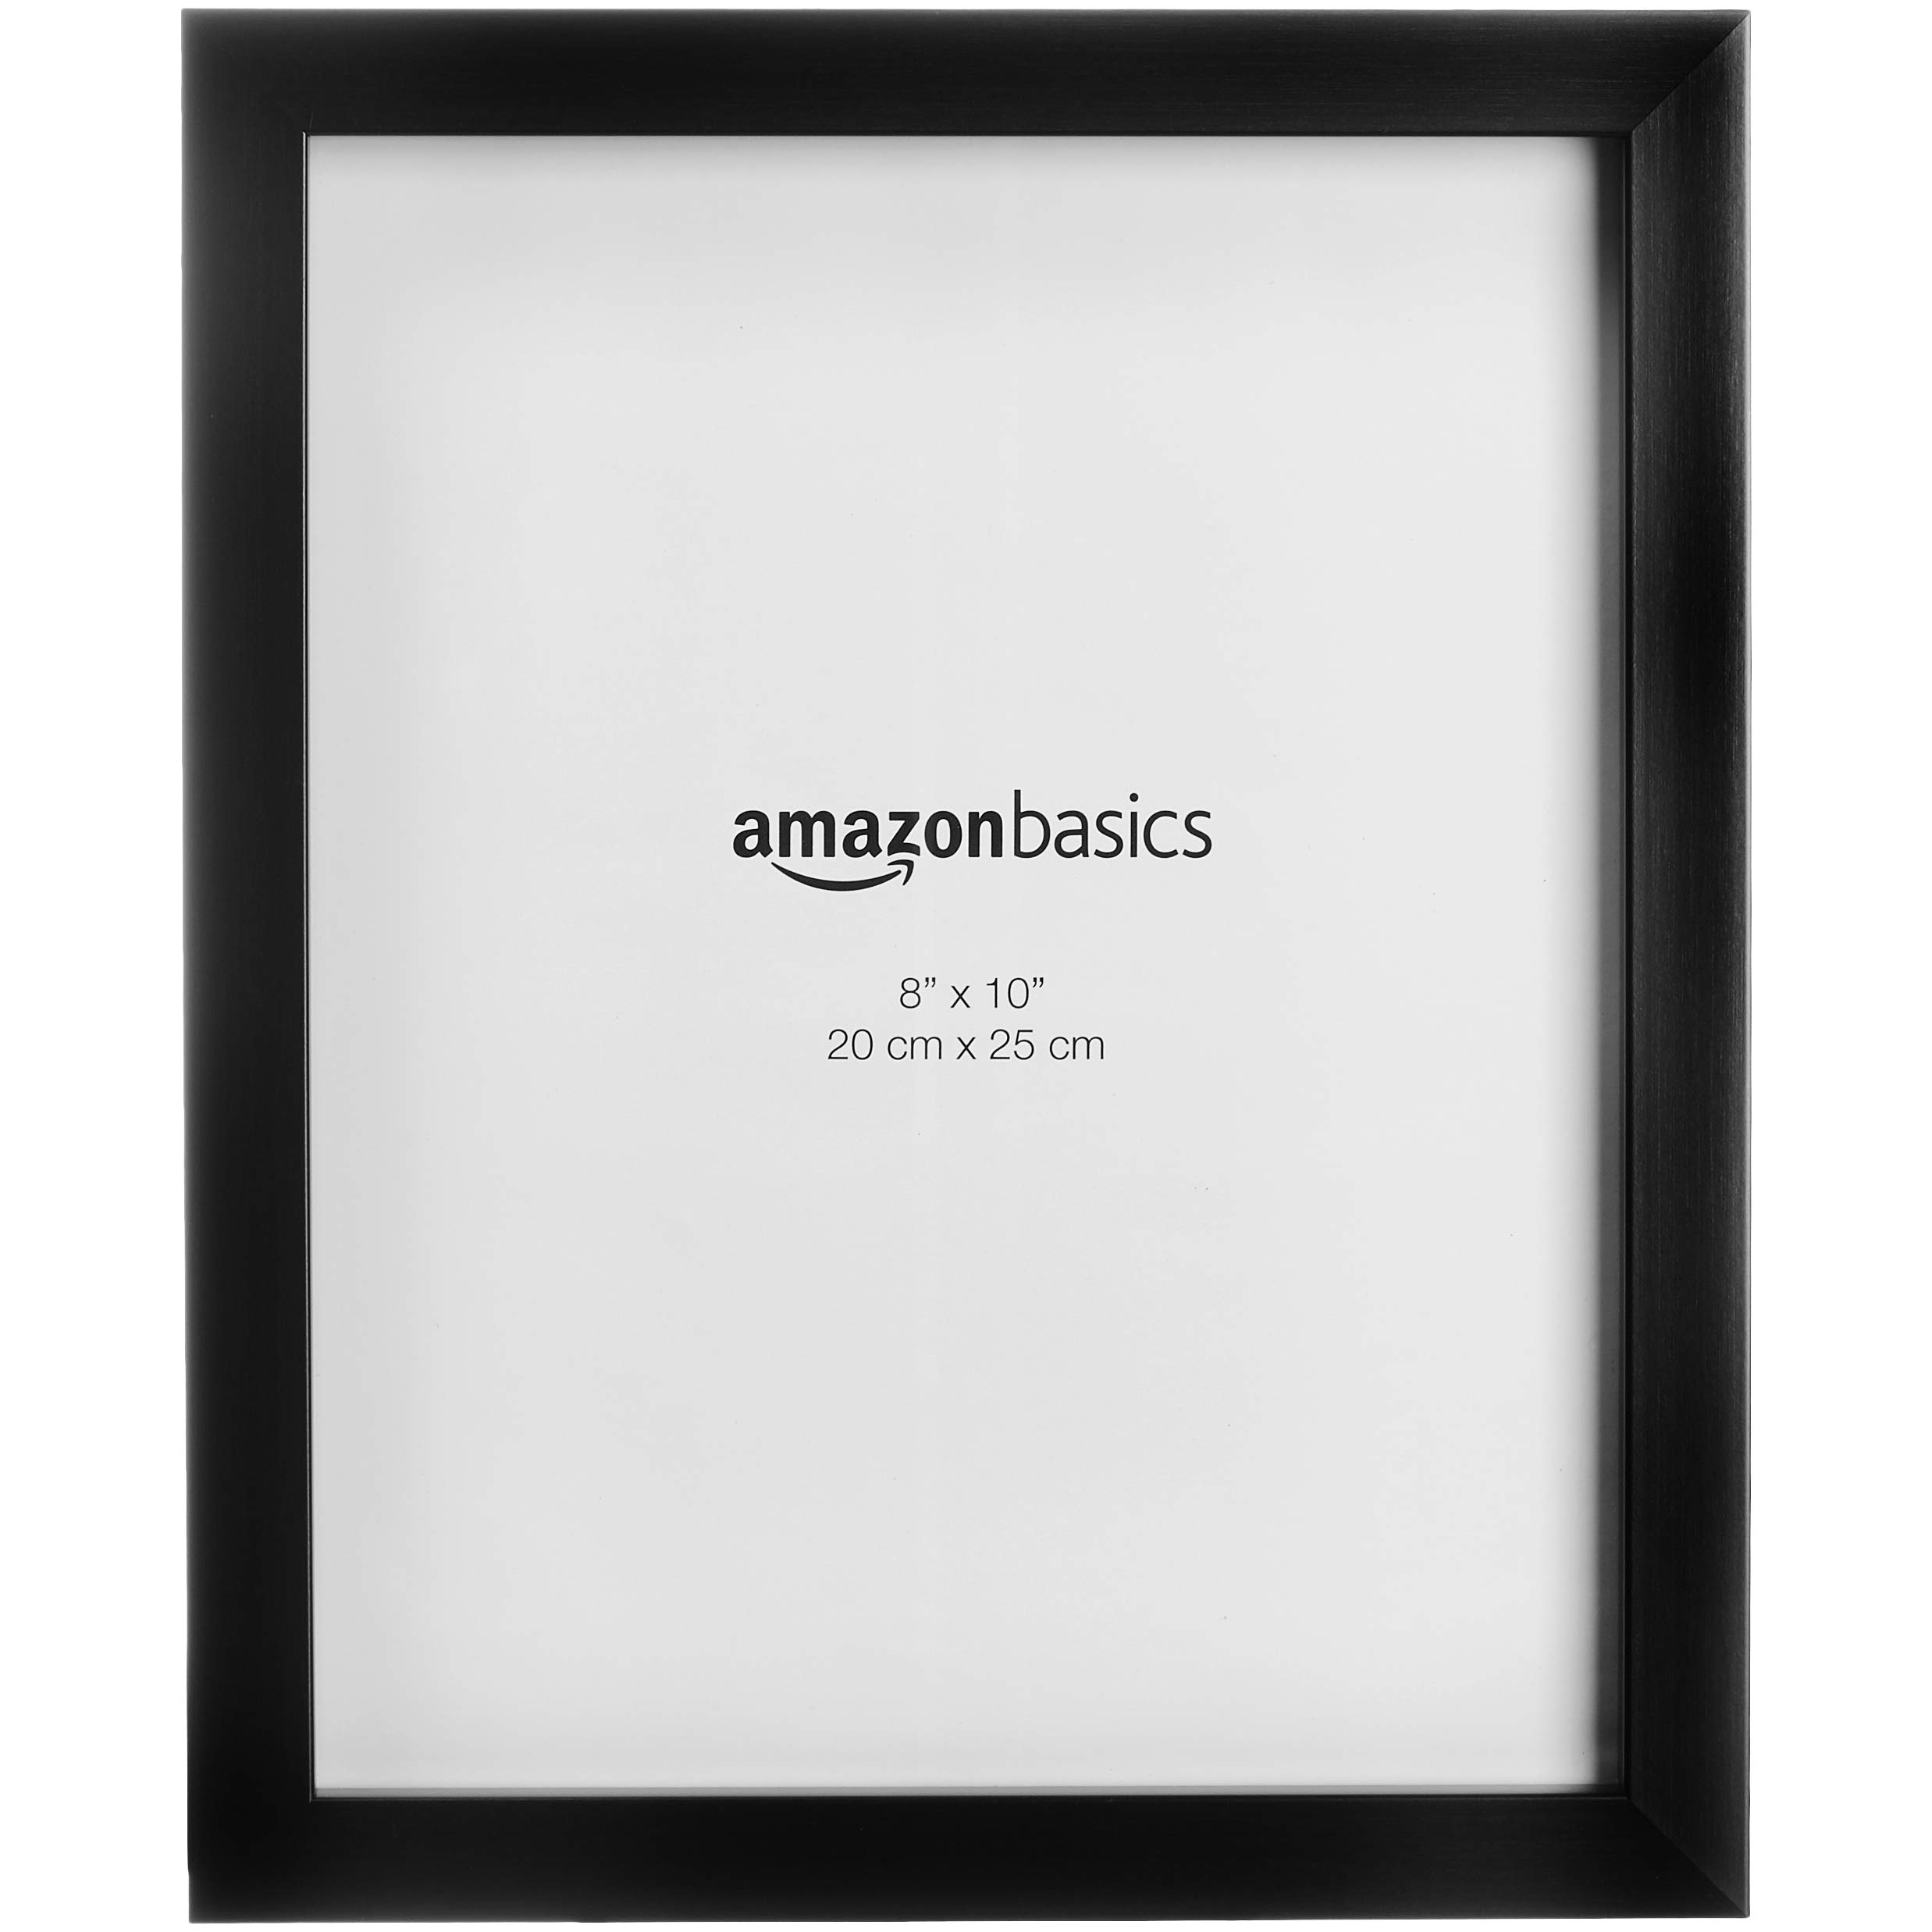 AmazonBasics Photo Picture Frame - 8'' x 10'', Black, 2-Pack by AmazonBasics (Image #1)